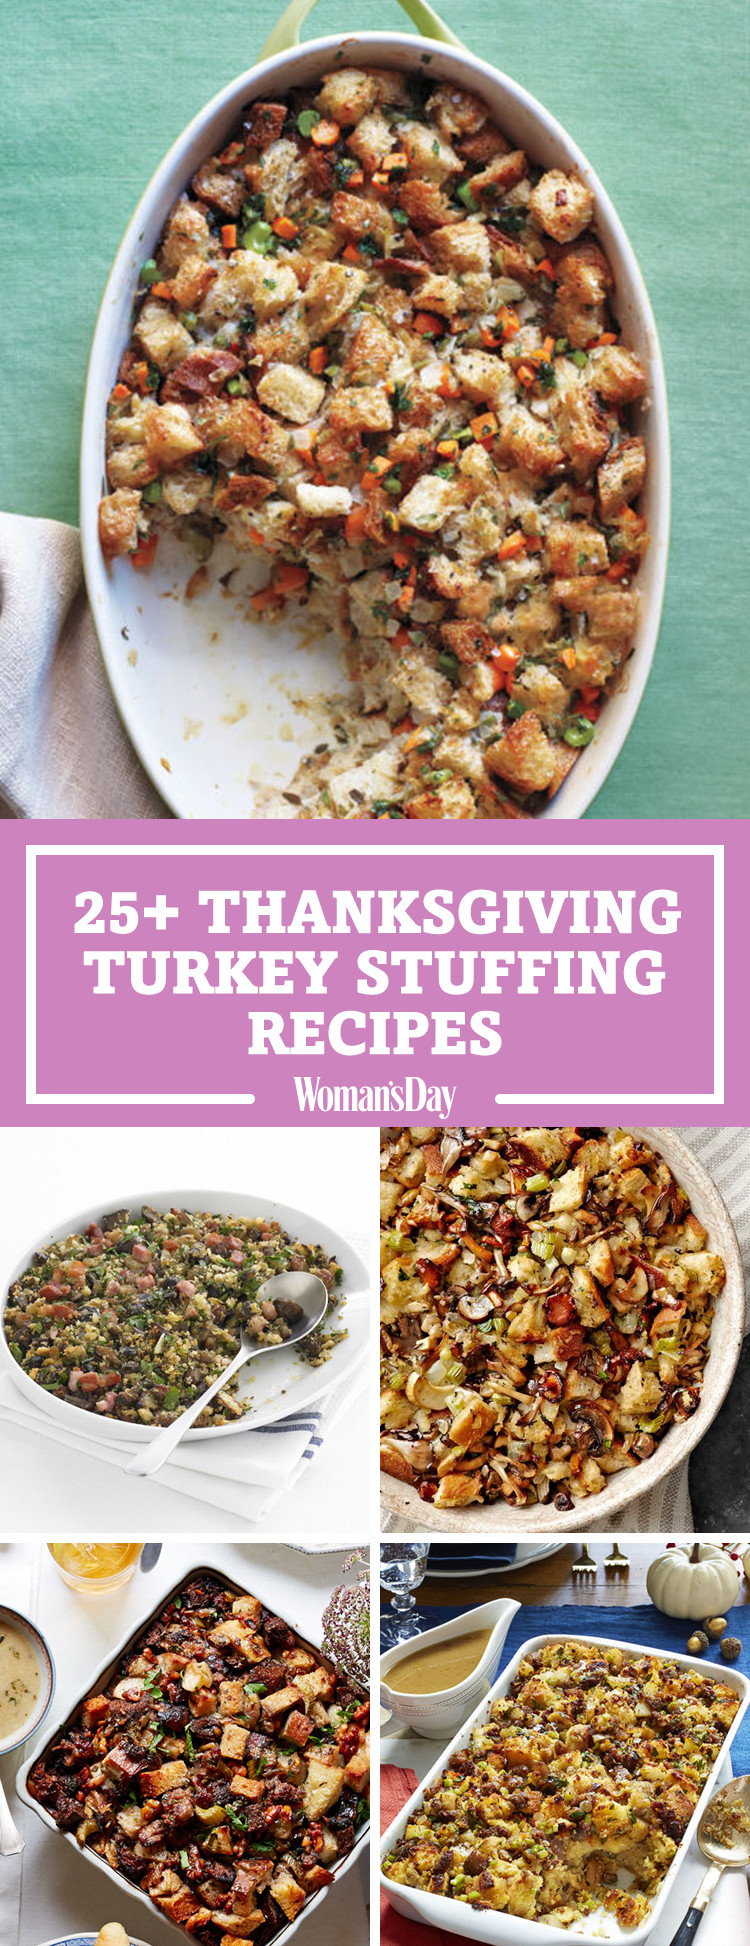 Turkey Stuffing Recipes For Thanksgiving  28 Best Turkey Stuffing Recipes Easy Thanksgiving